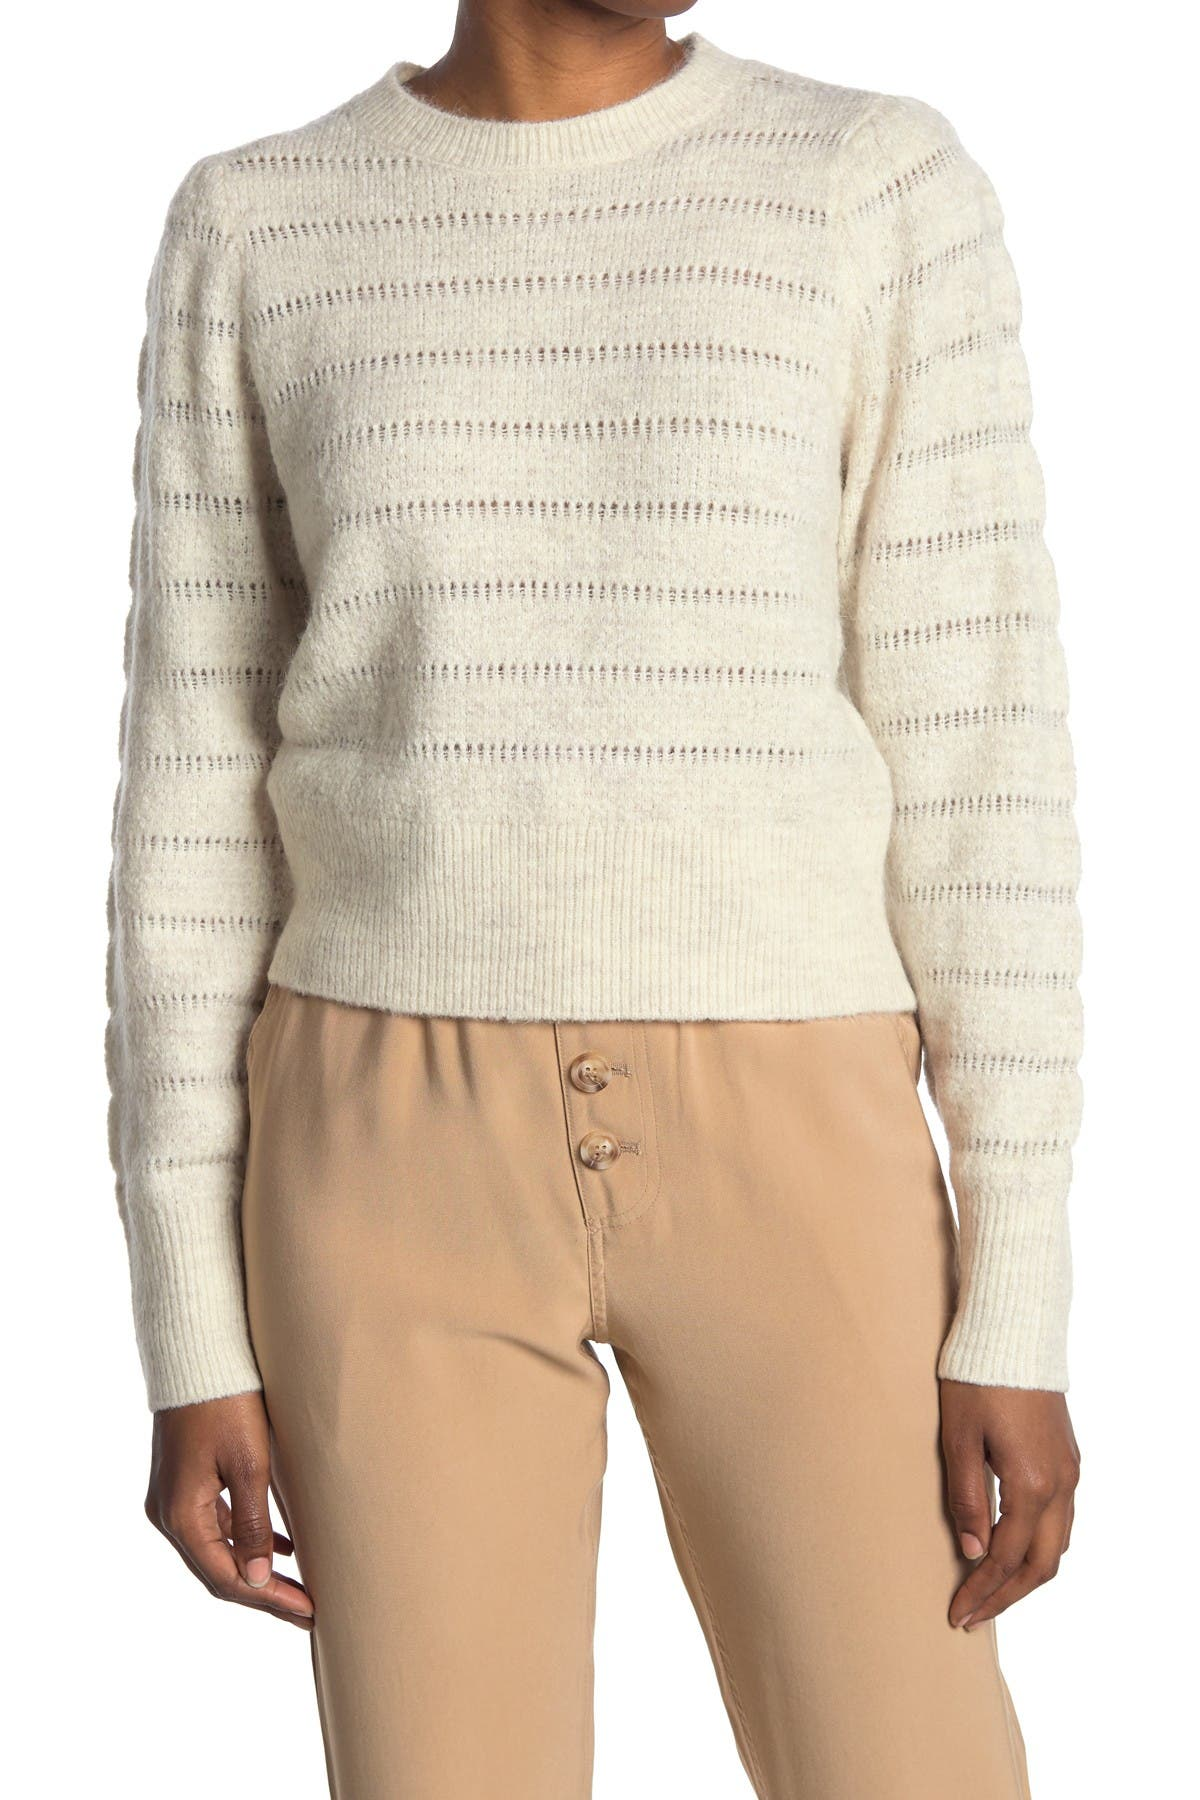 Image of Elodie Textured Crew Neck Knit Sweater